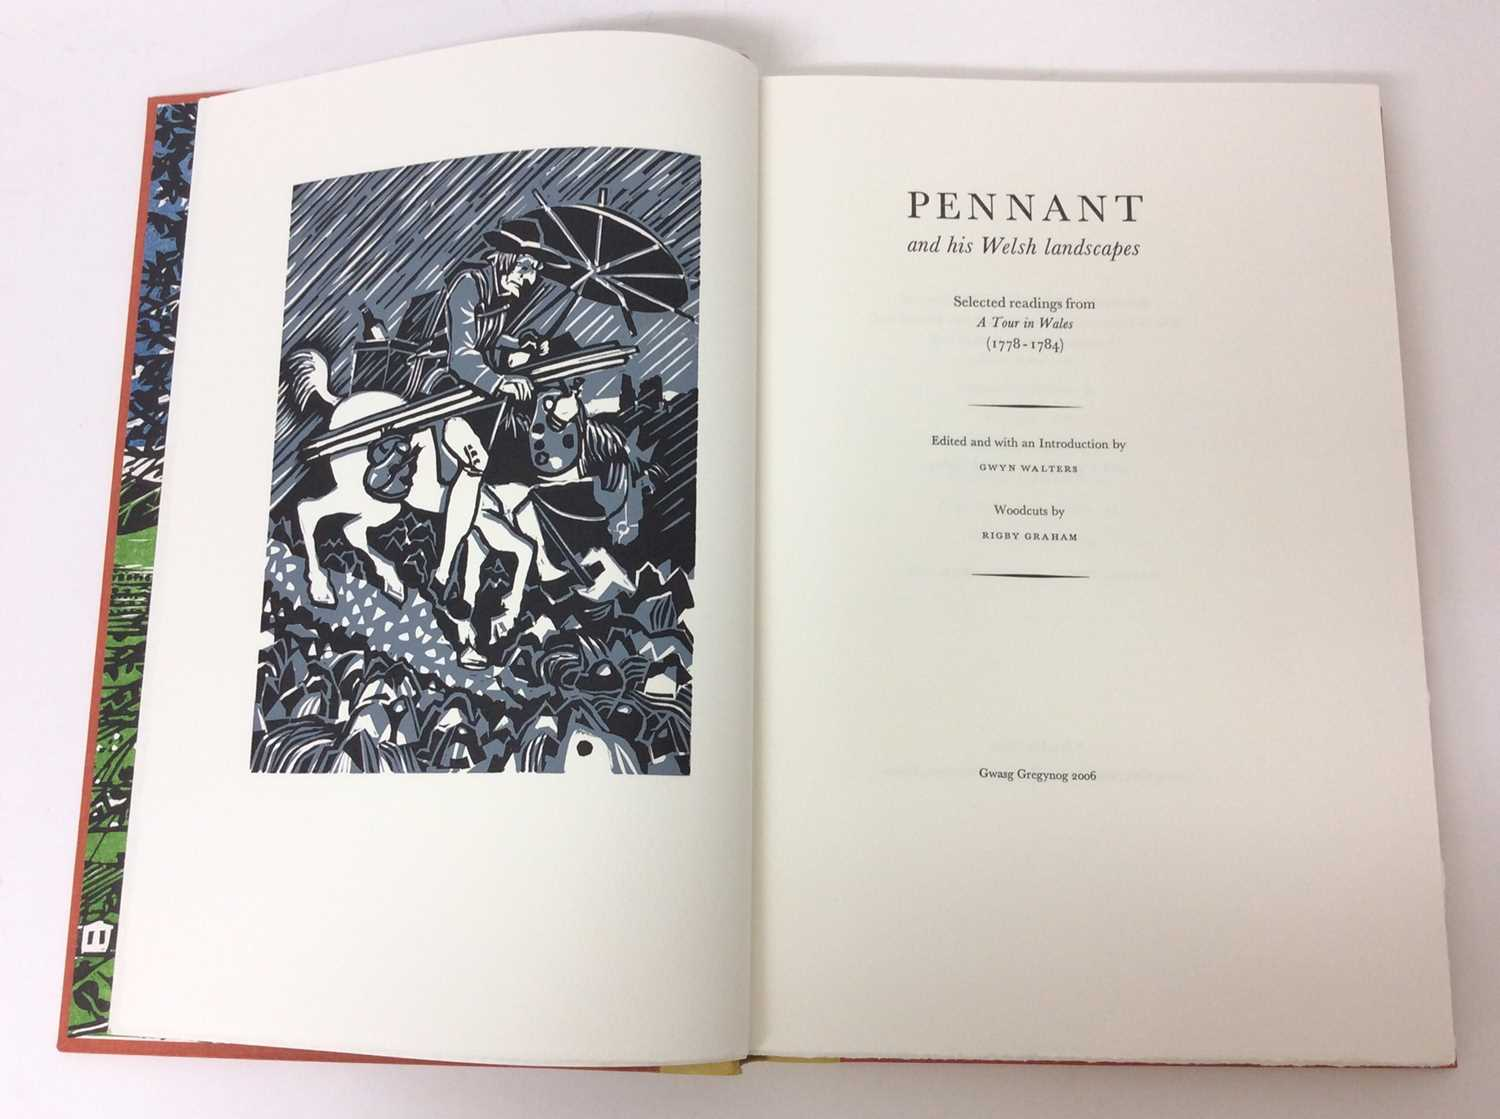 Pennant and His Welsh Landscape with woodcuts by Rigby Graham by Gregynog Press 2006, limited editio - Image 4 of 9